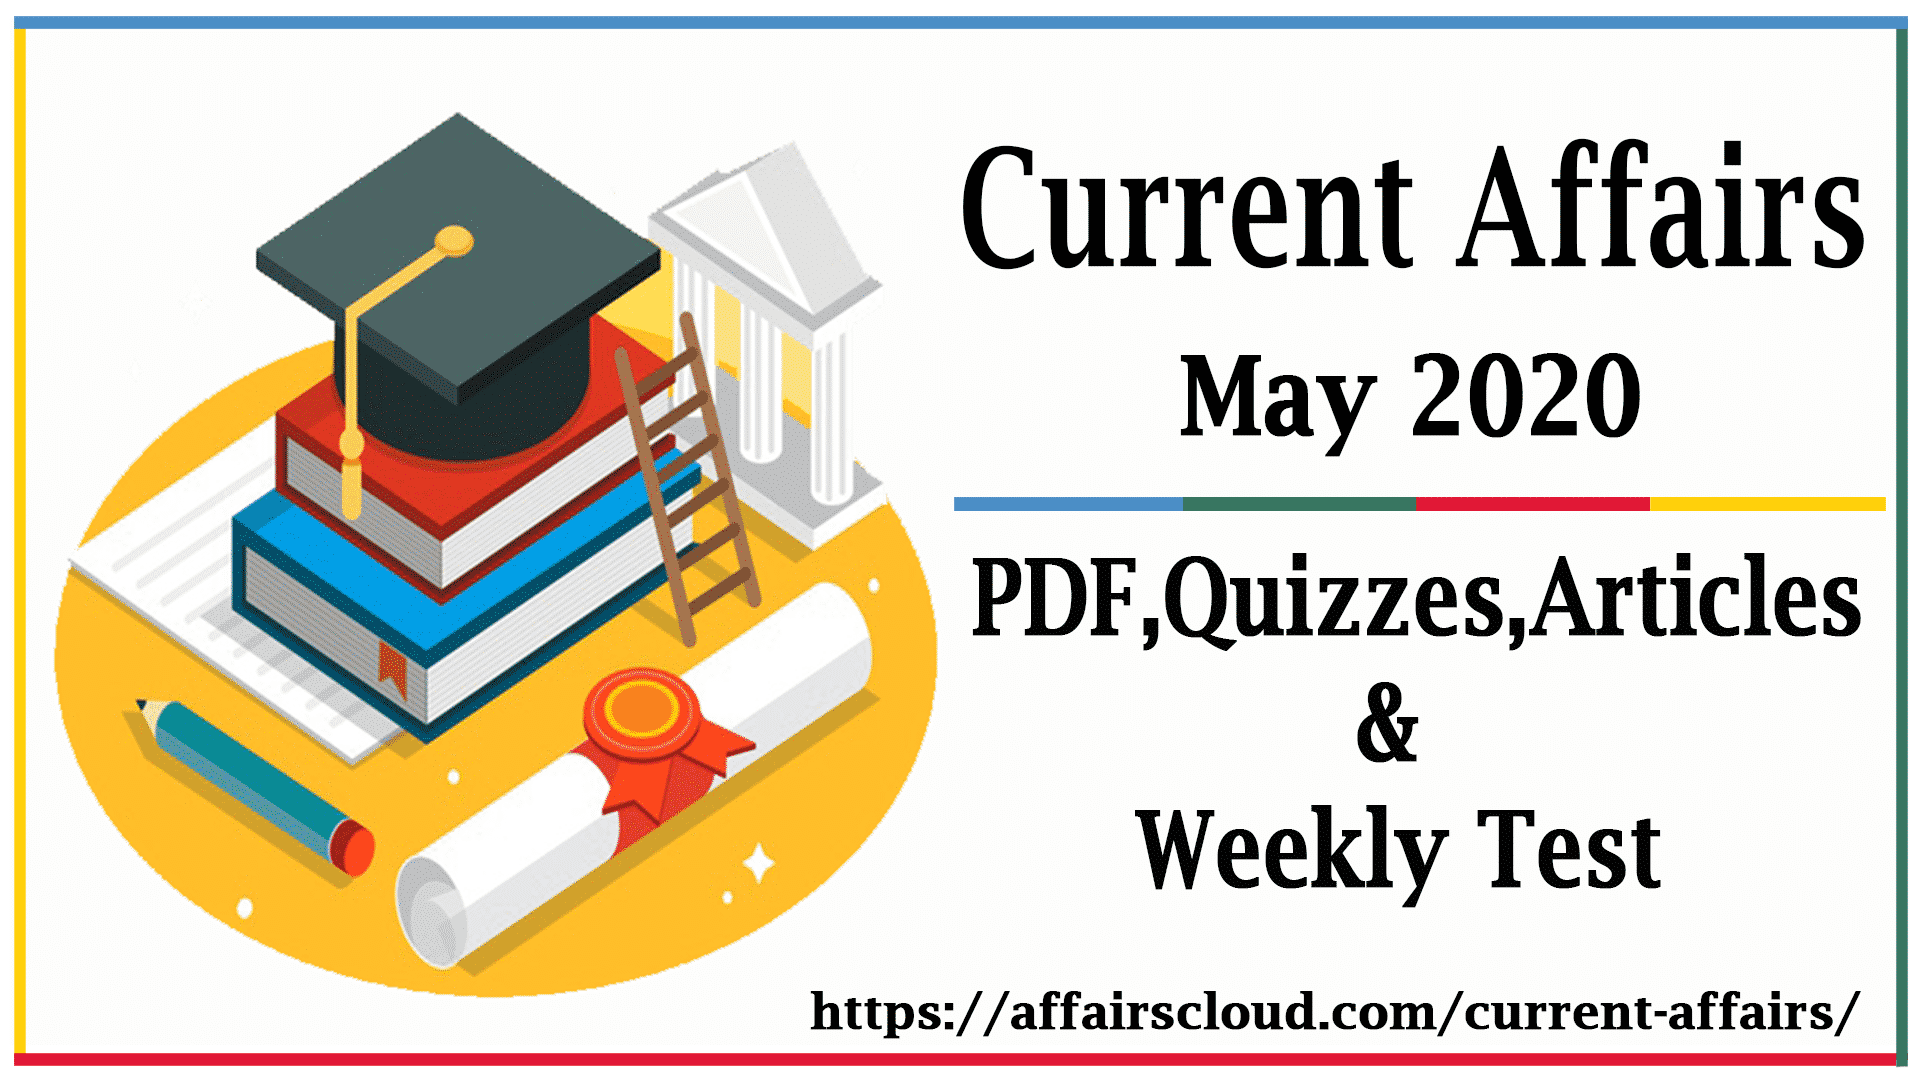 Current Affairs May 2020 PDF